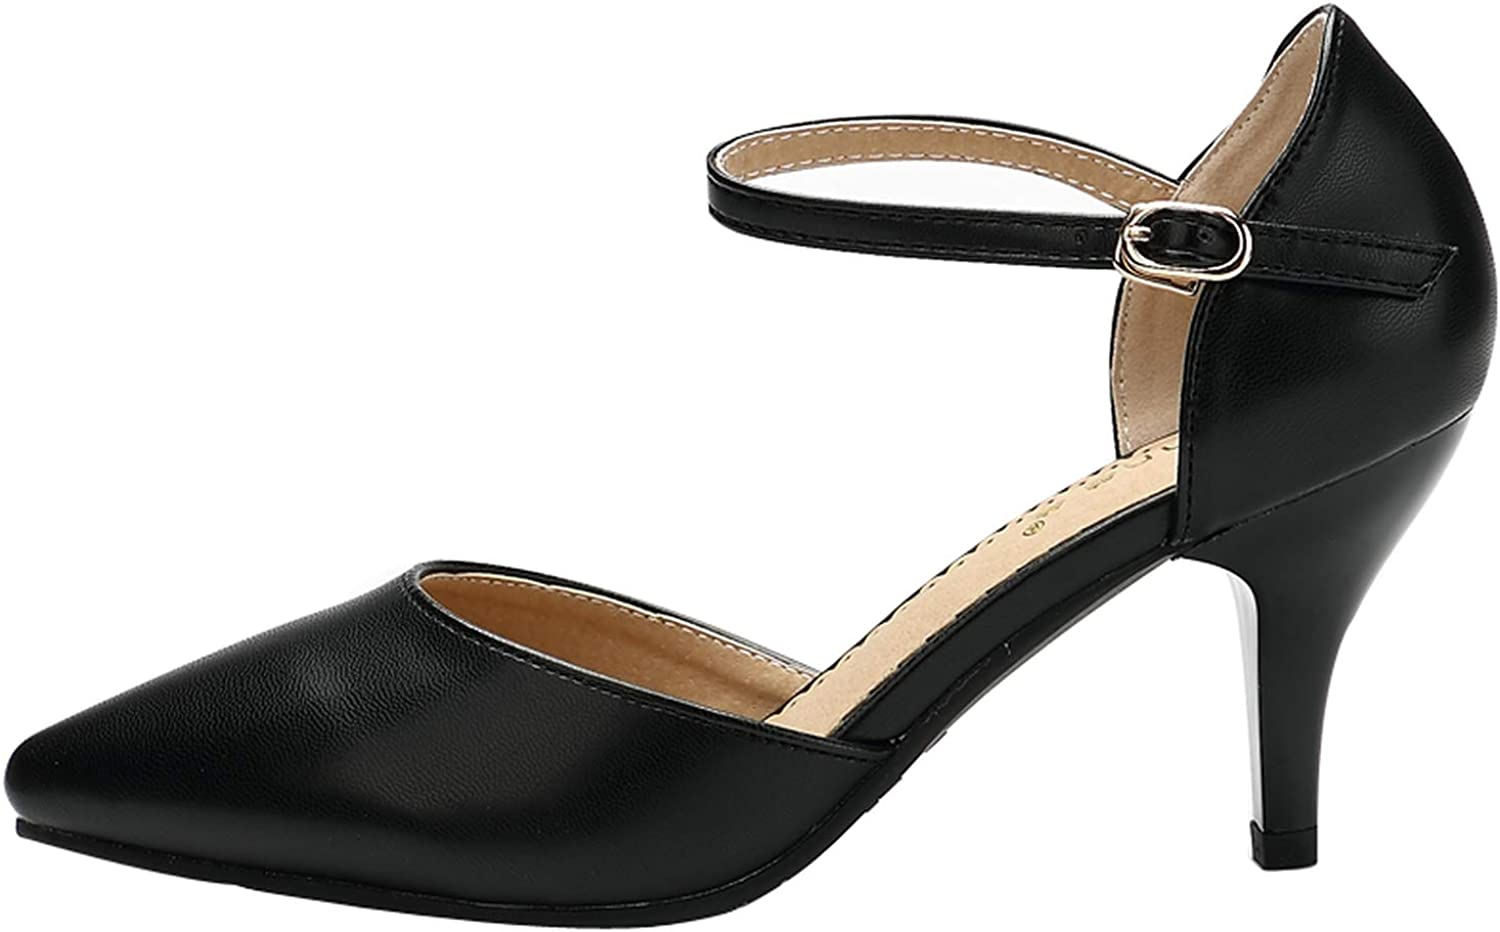 Mao YiE Spring Summer Basic Women Pumps shoes Shallow Buckle Strap Thin Heels Pointed Toe